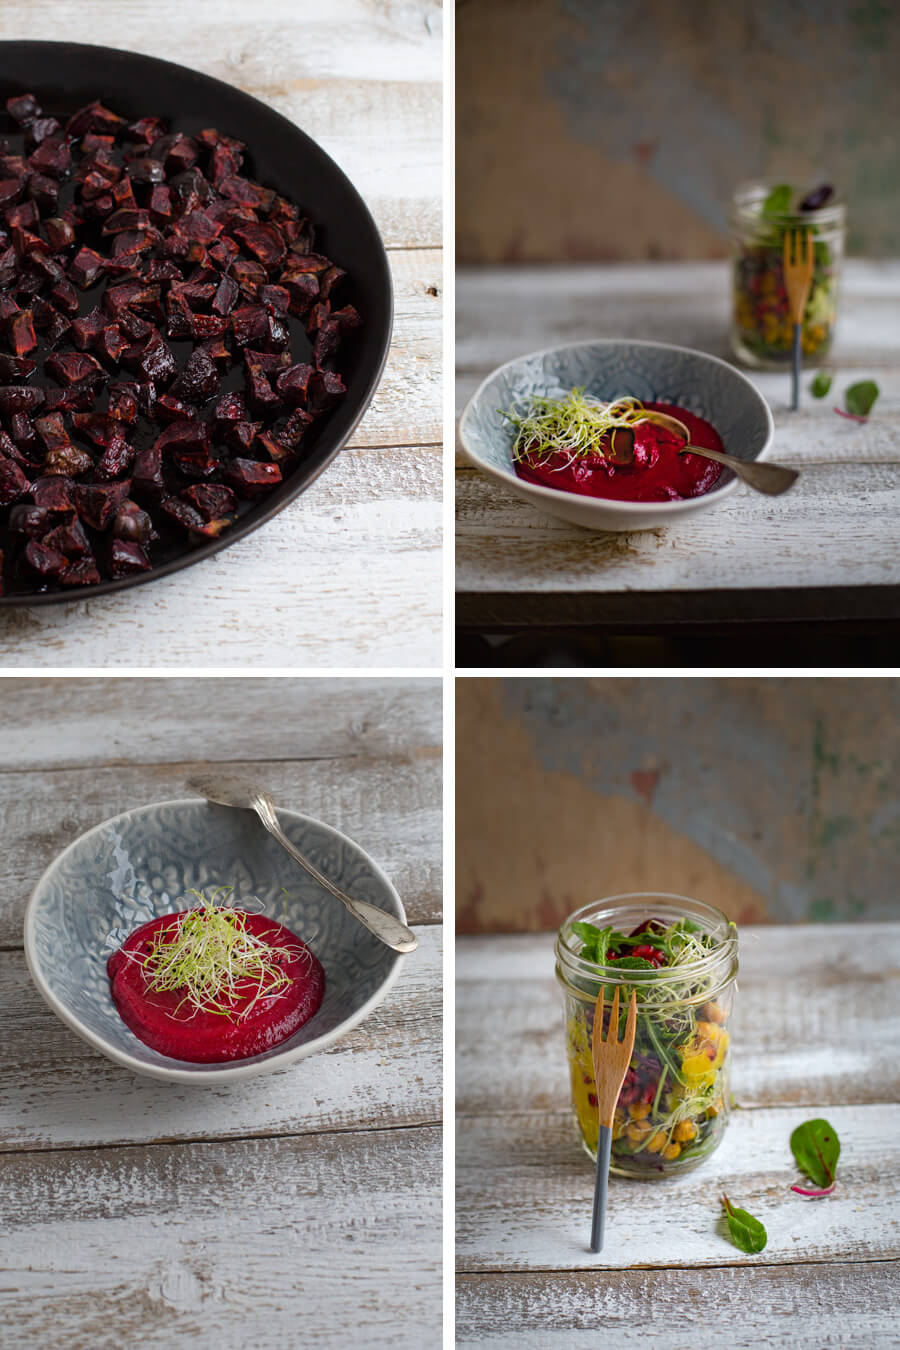 Beetroot soup with salad